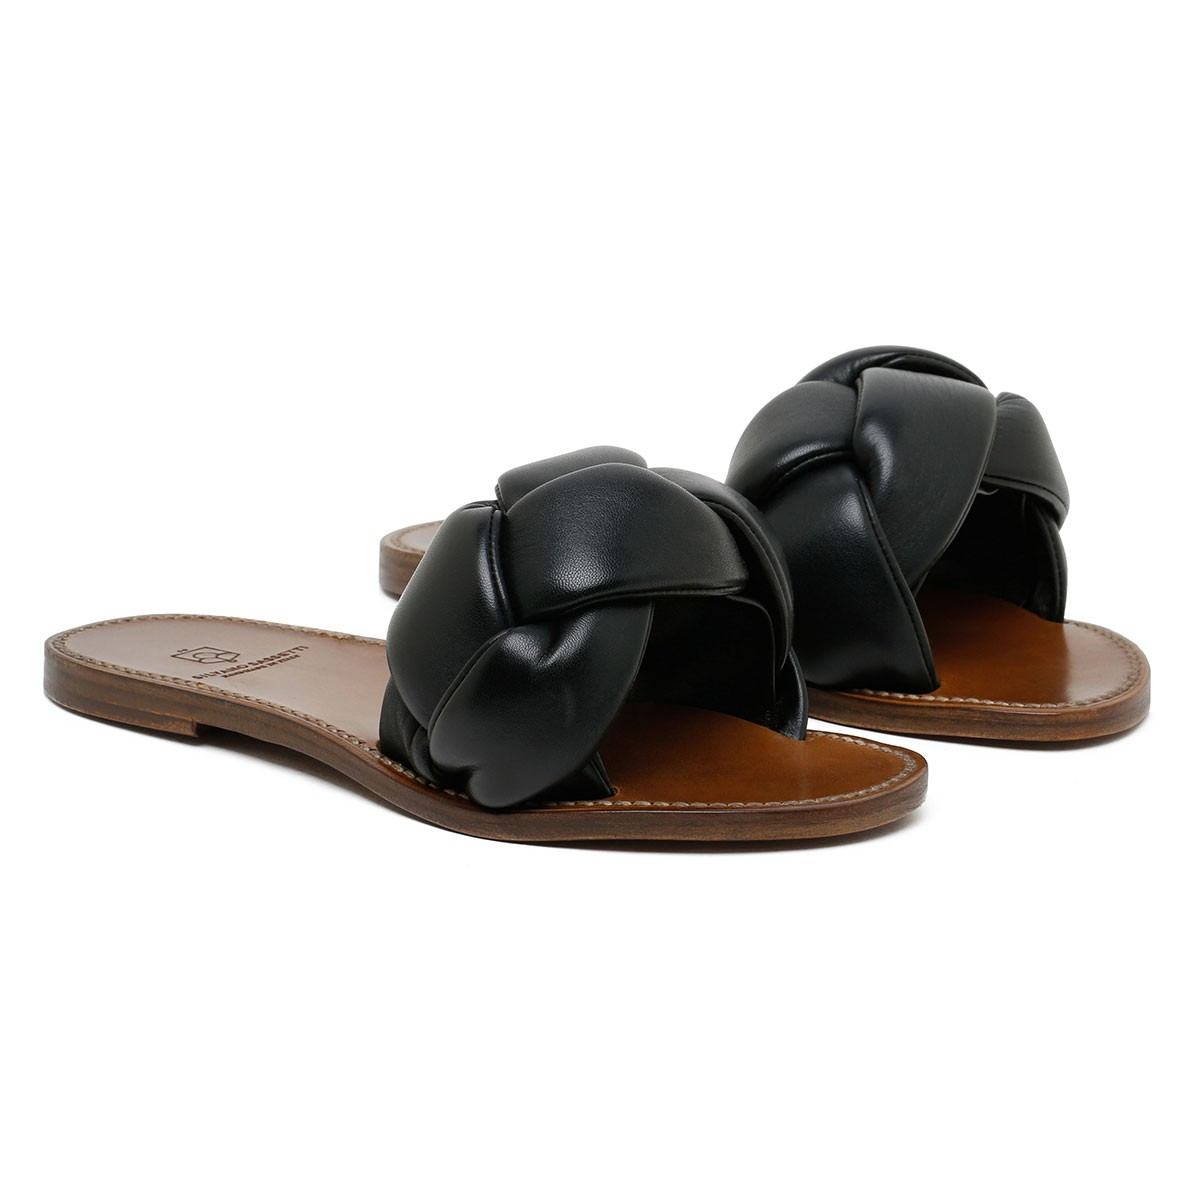 Black woven leather sandals